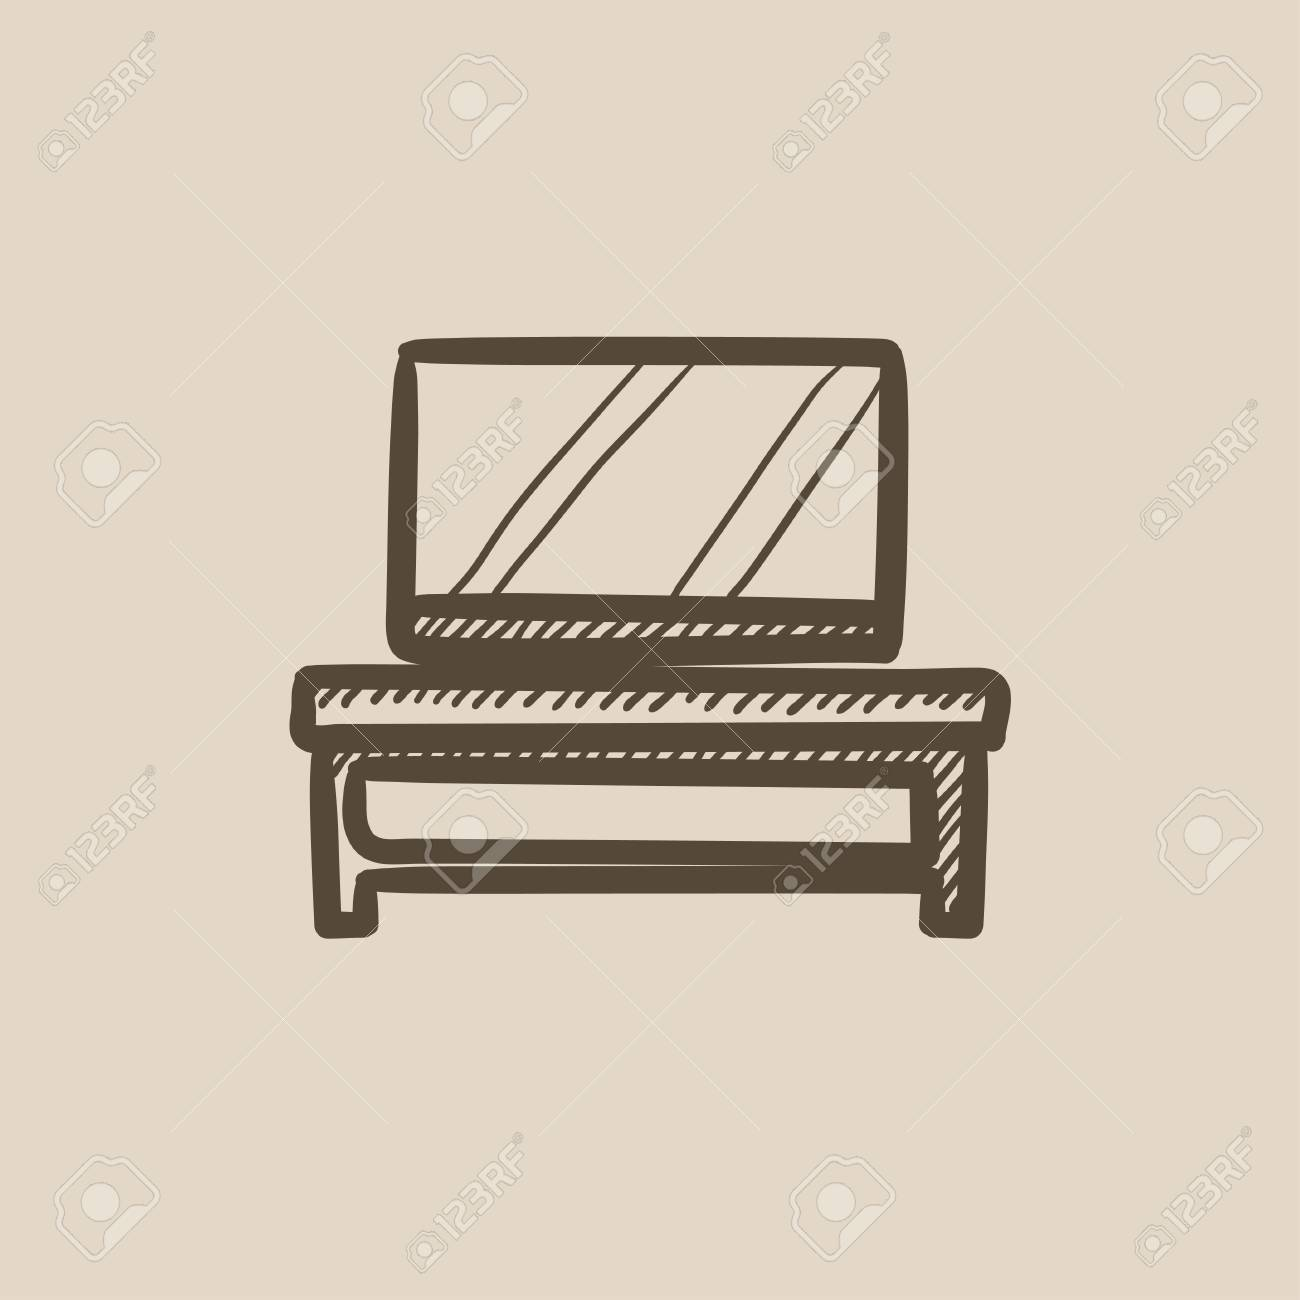 1300x1300 Flat Screen Tv On Modern Tv Stand Vector Sketch Icon Isolated